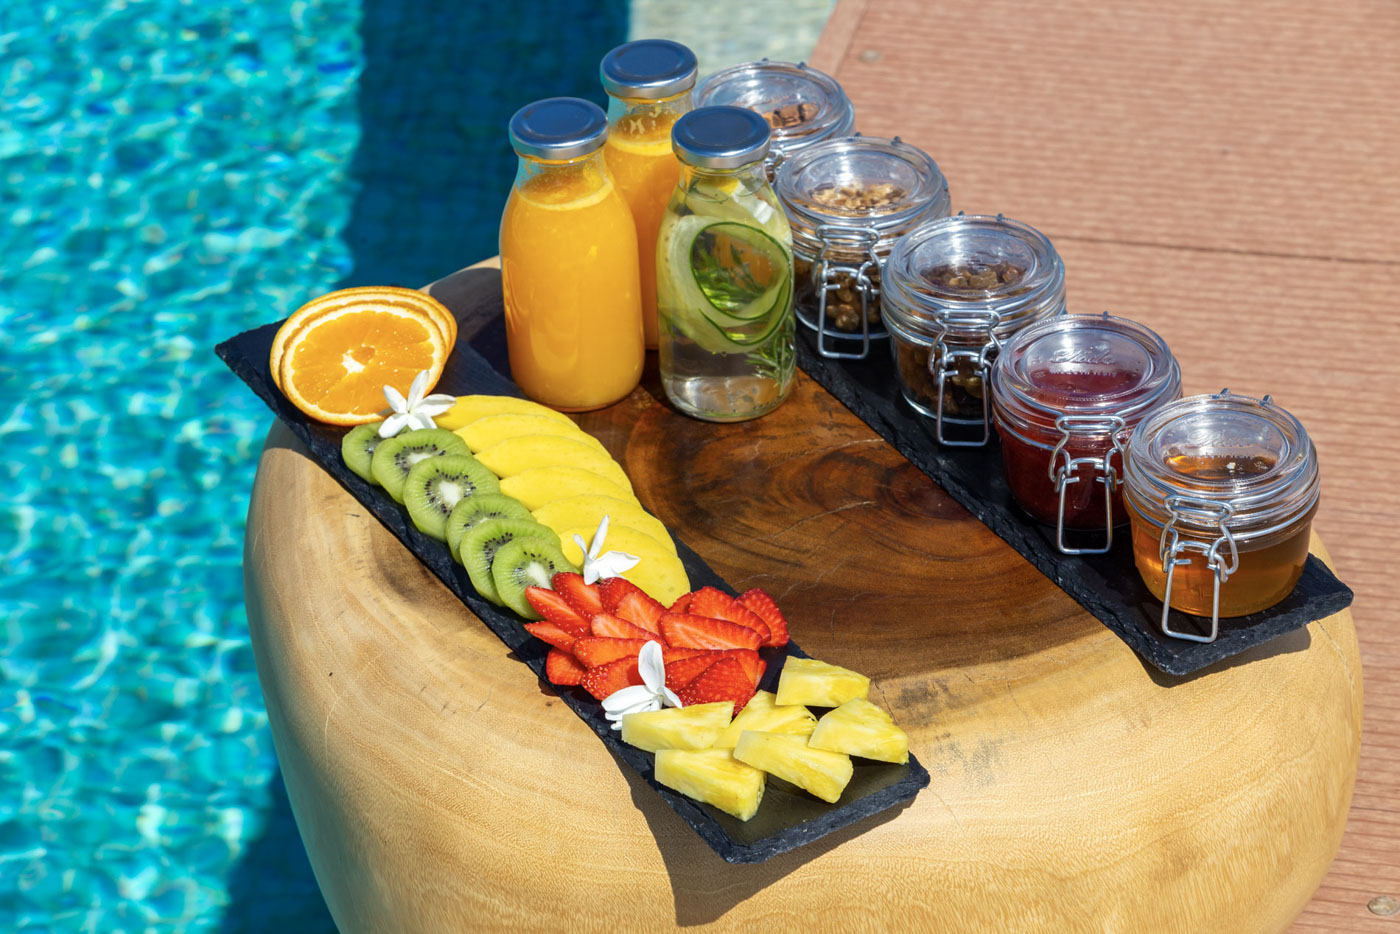 Elysian luxury hotel and spa Kalamata breakfast with fruits and jam